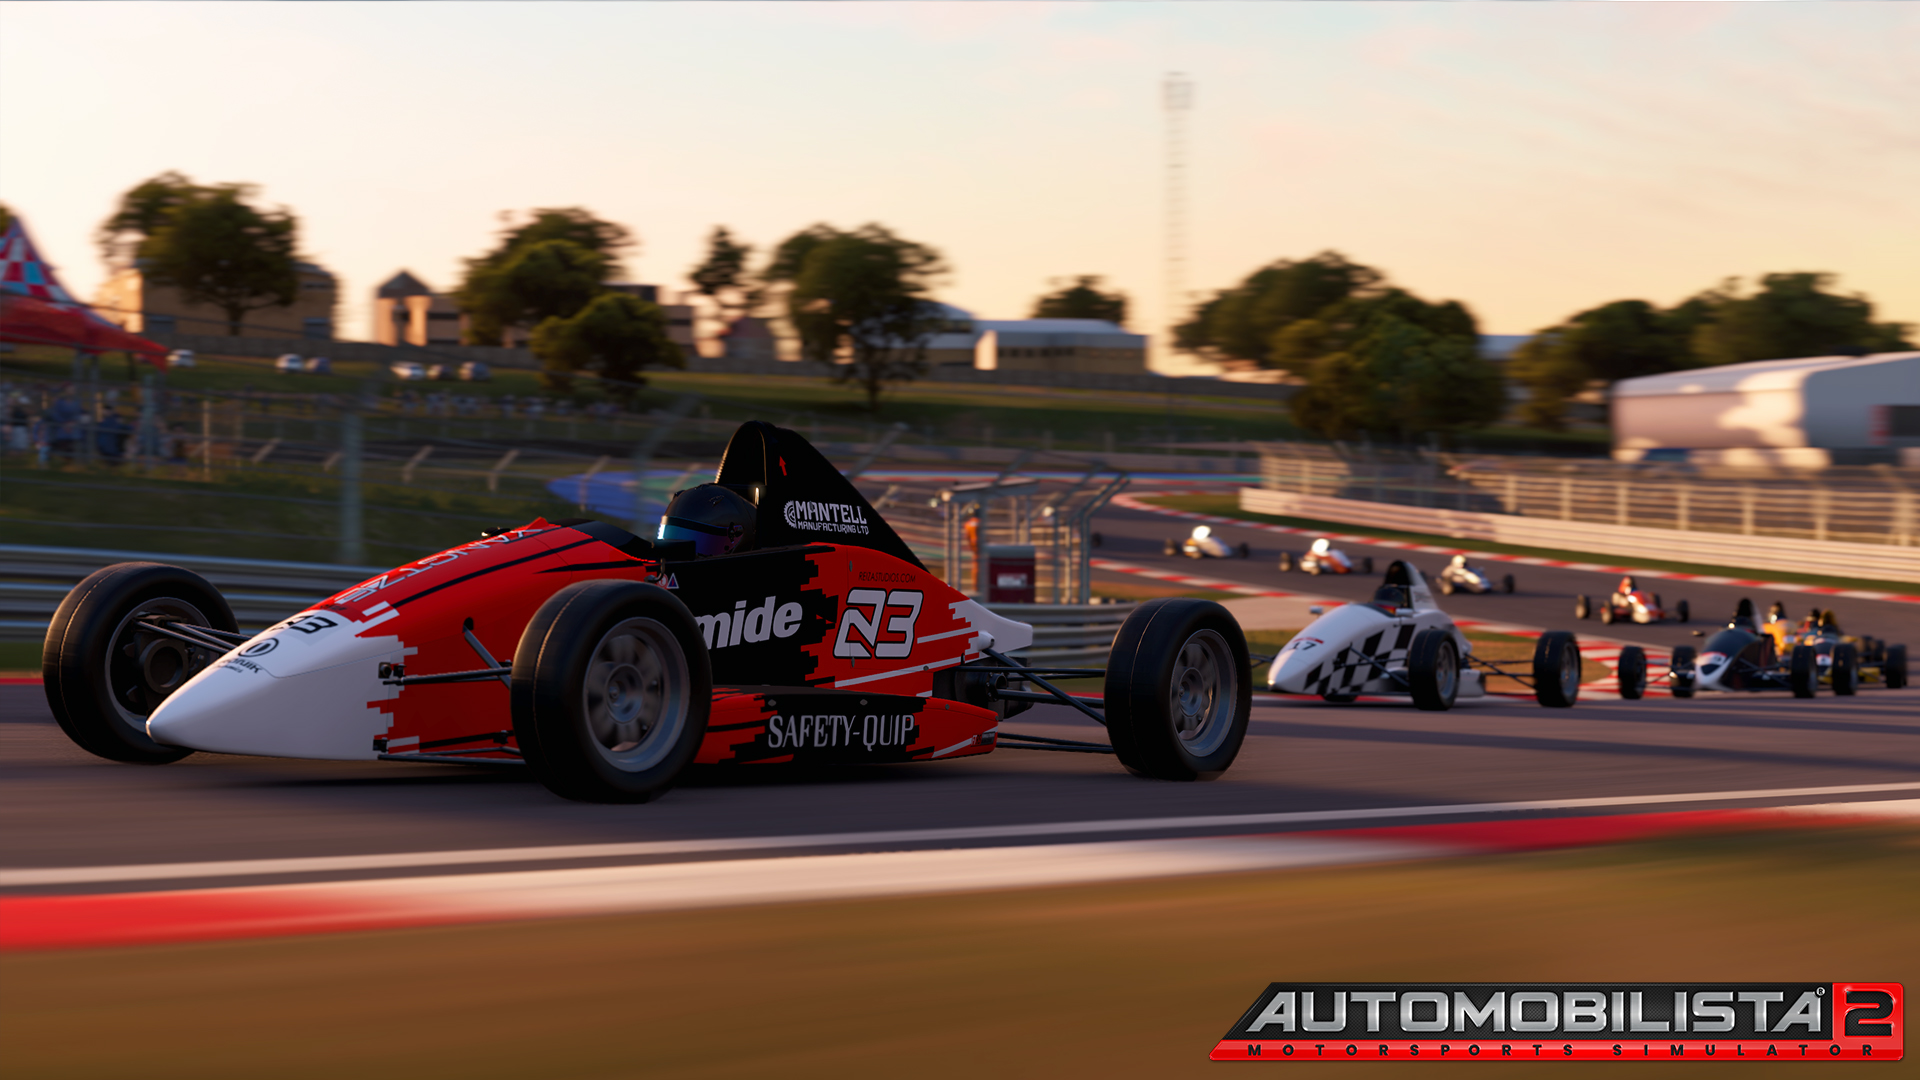 ams-2-update-2-jpg Automobilista 2 | Latest Update Adds Hot Cars Series